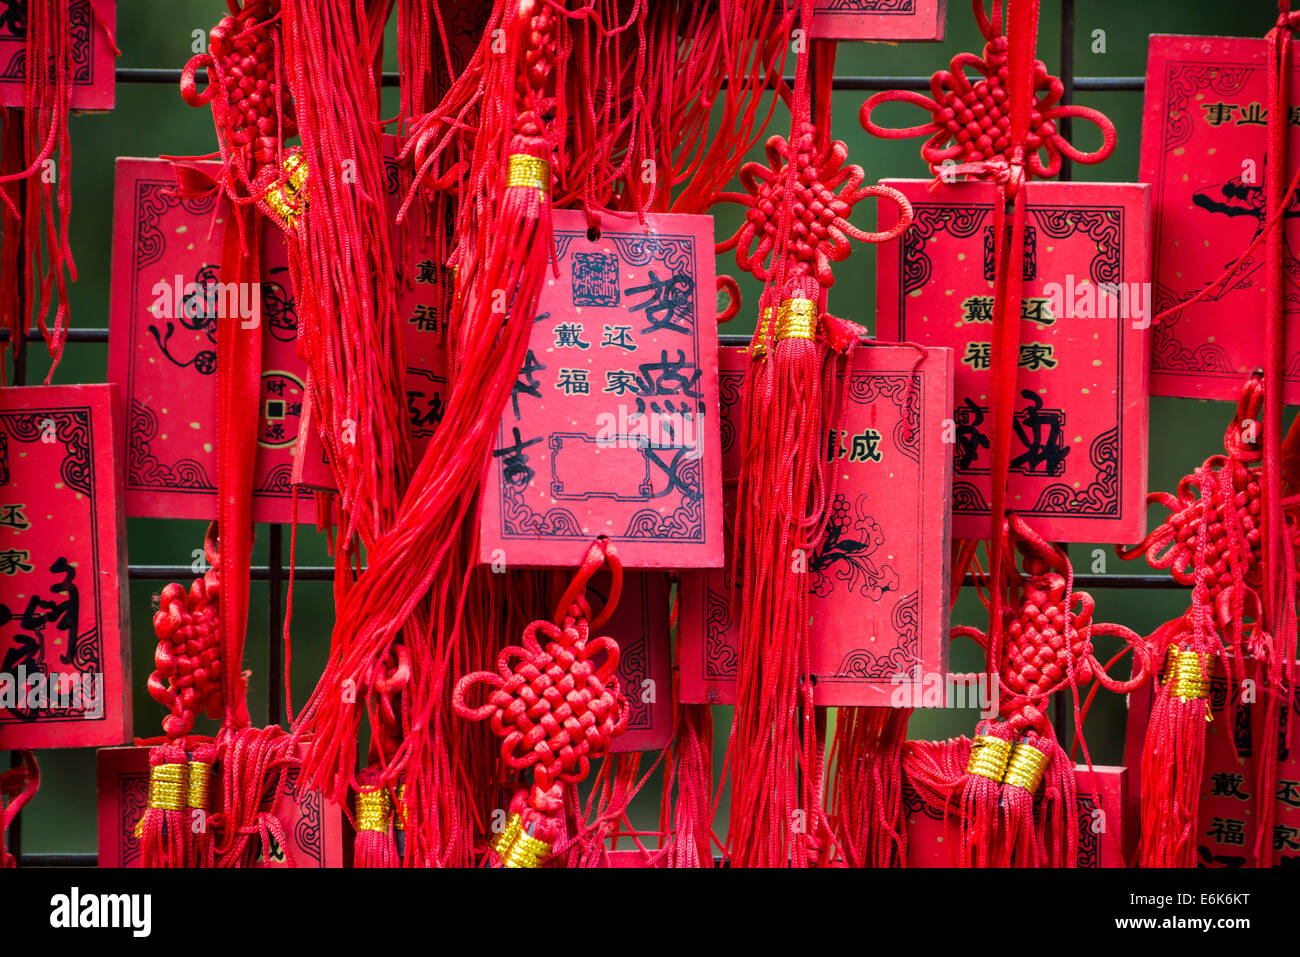 Cartes chinoise rouge qui souhaitent, Beijing, Chine Photo Stock